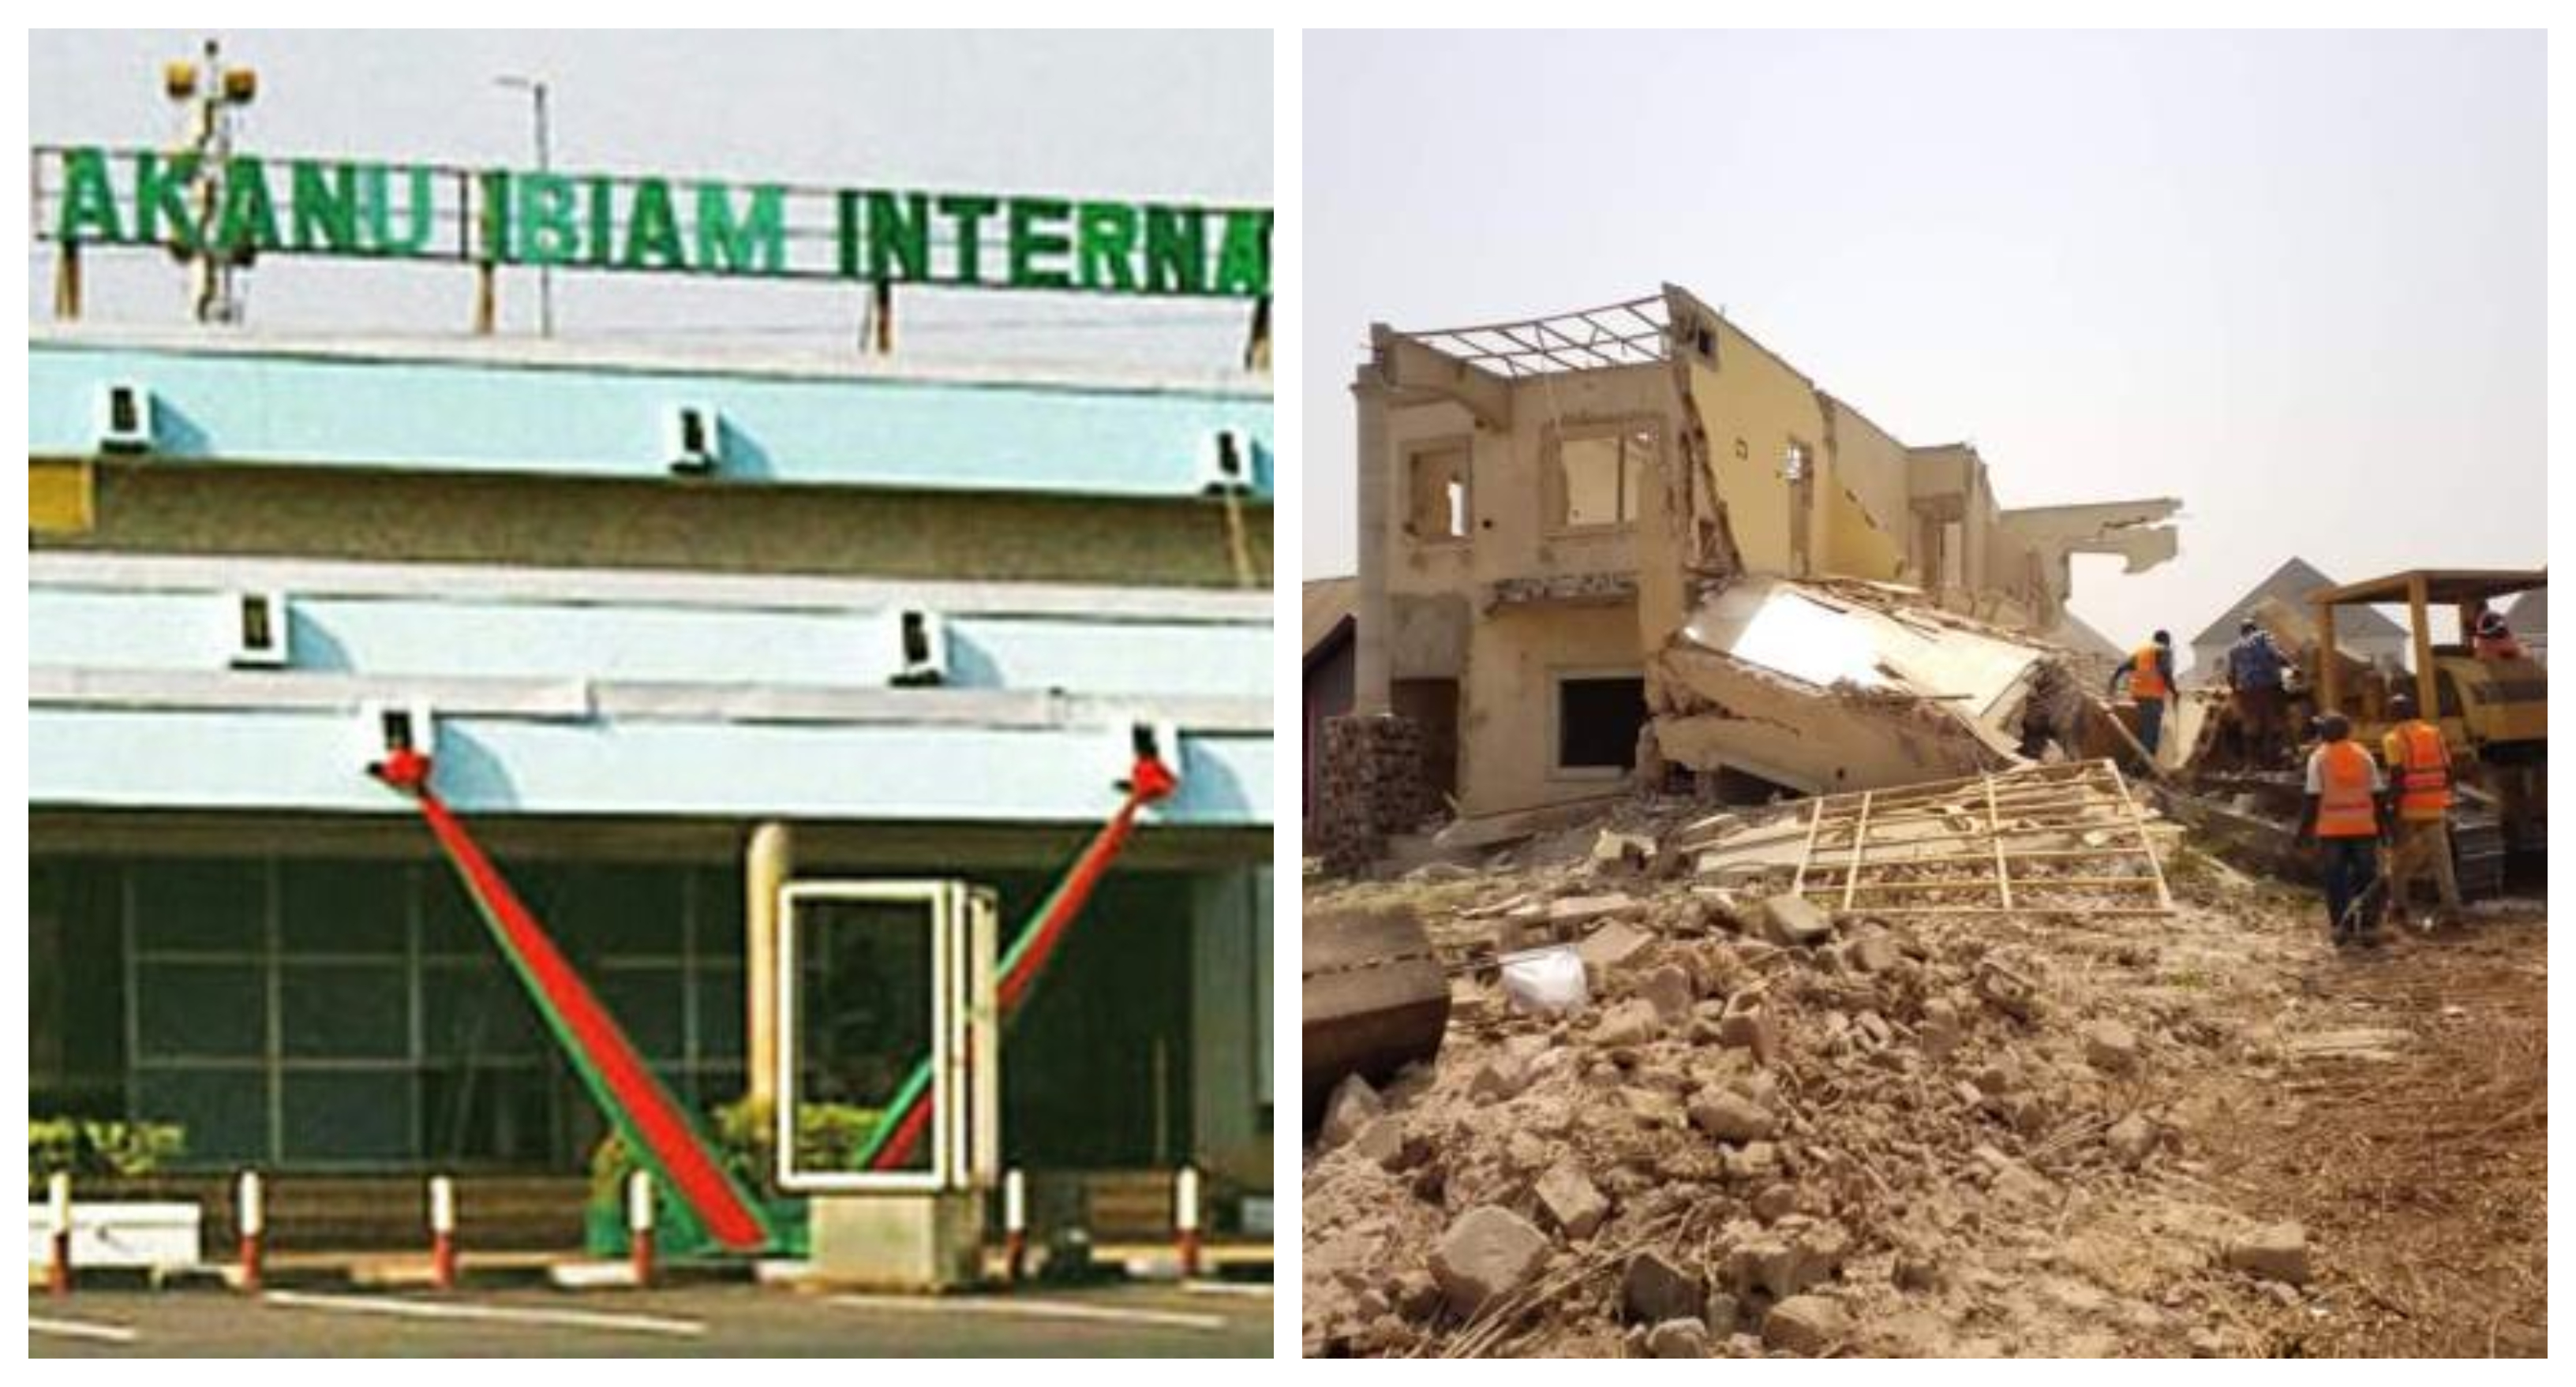 Enugu govt begins demolition of structures encroaching on Akanu Ibiam Int'l Airport - TVC News